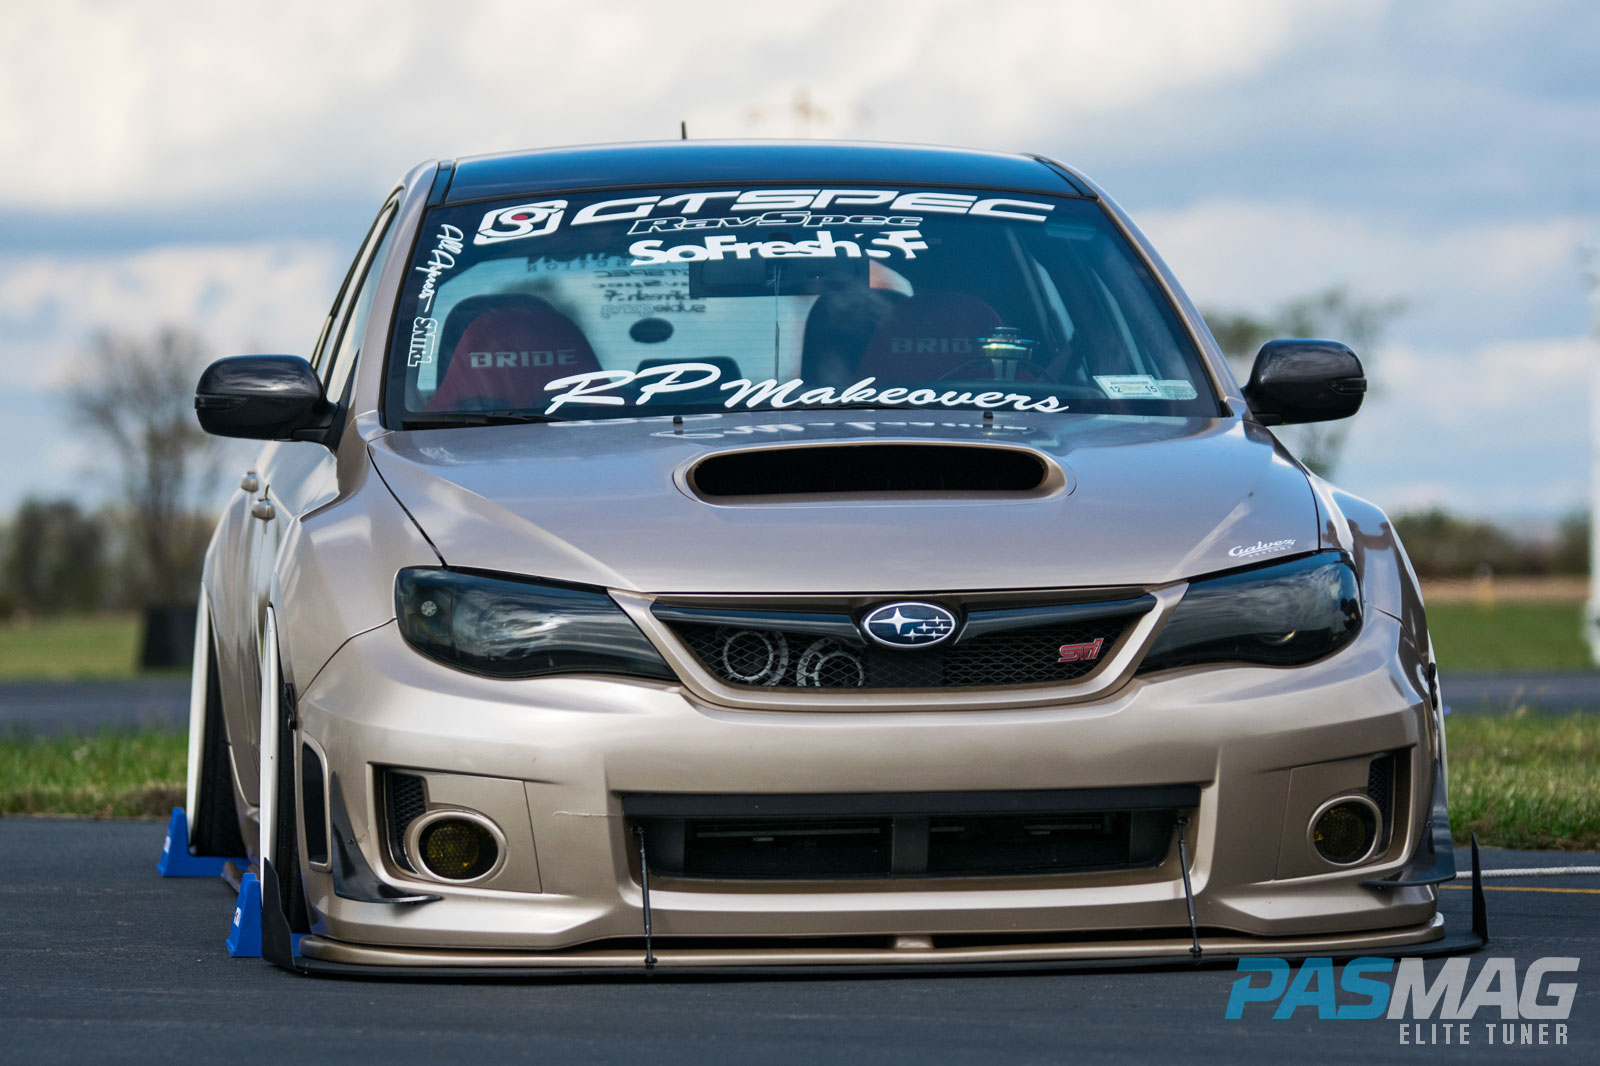 PASMAG Trending Haters Gonna Hate Subaru WRX STI Stance 18